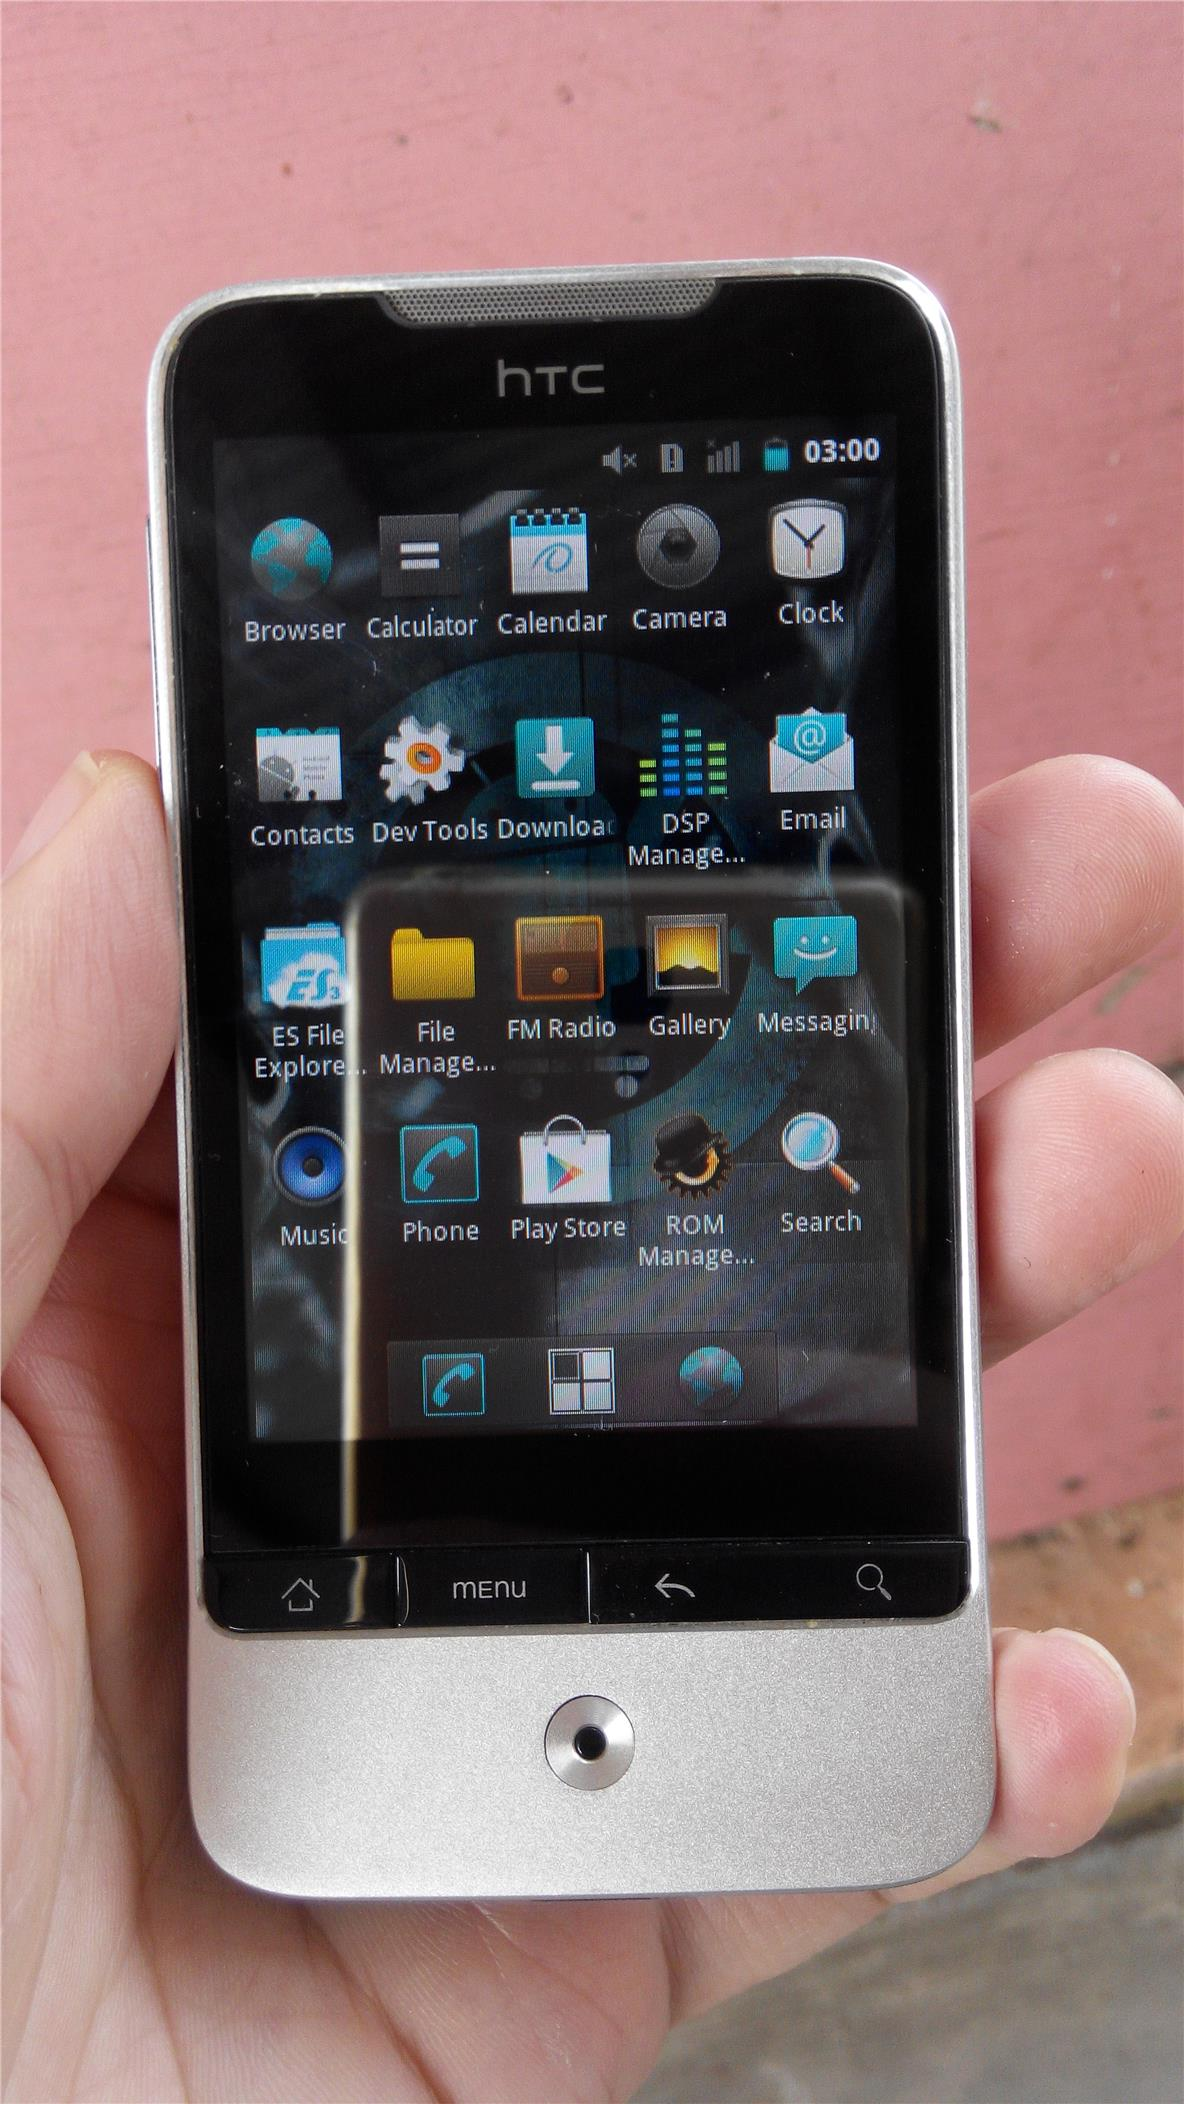 Phone Android Phone Used second hand used smart phonehtc le end 2242017 1215 pm legend androidlike newlow price